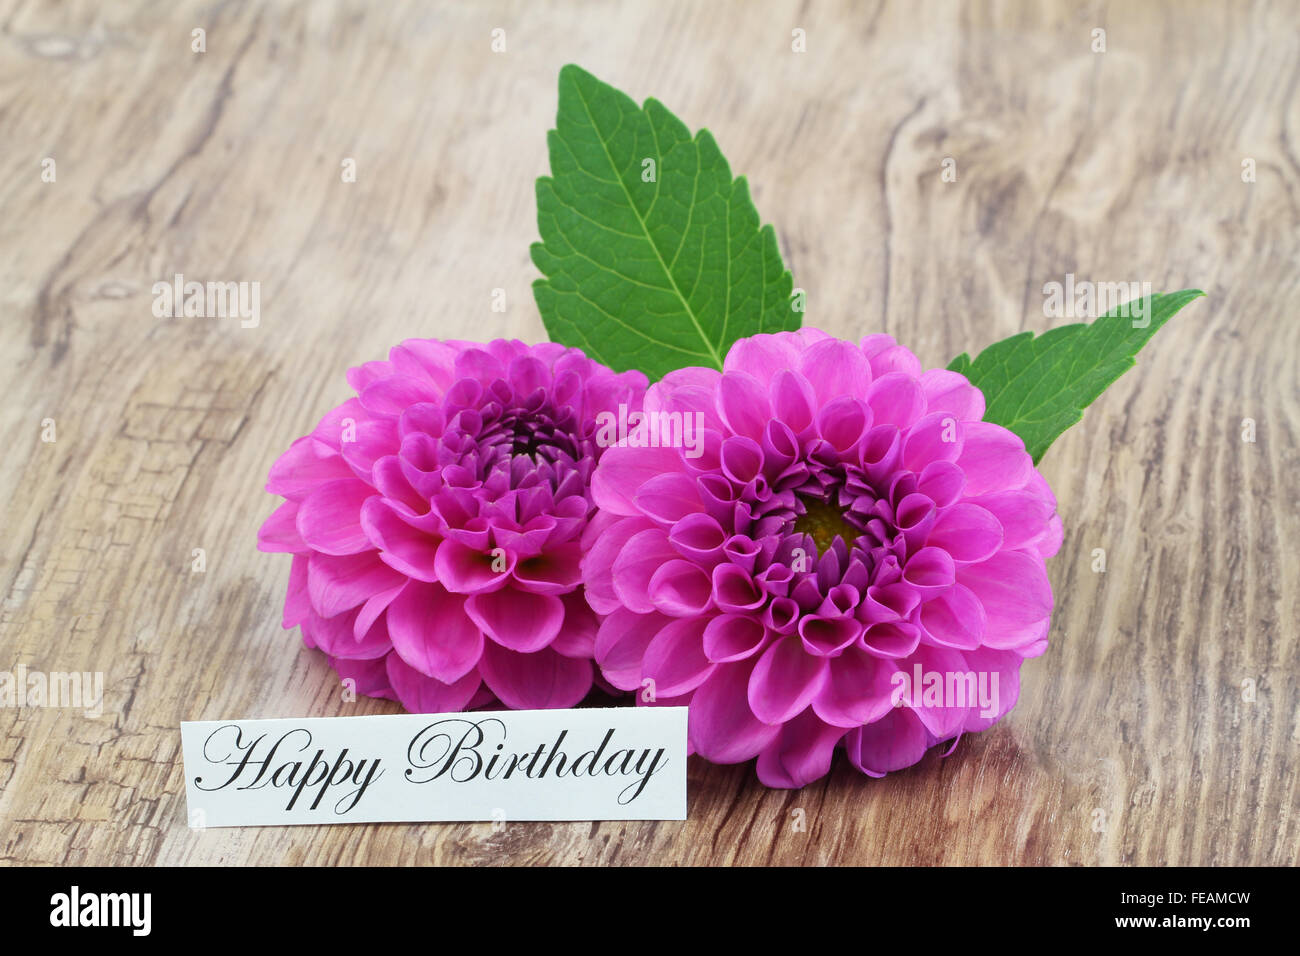 happy birthday card with two pink dahlia flowers stock photo, Birthday card